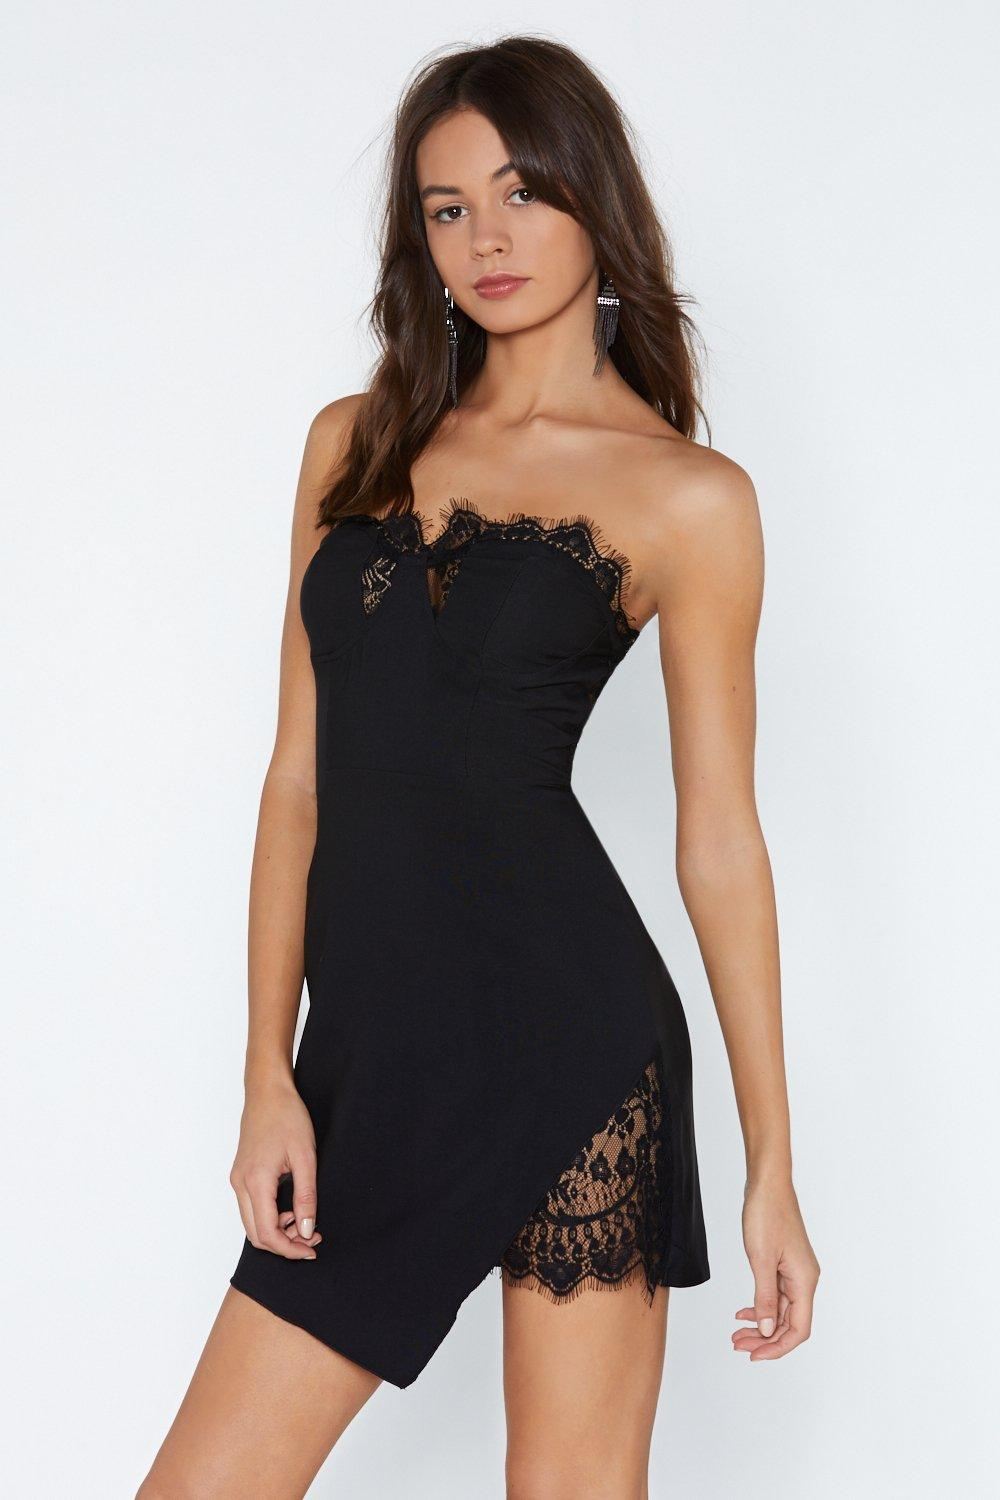 acbd3ac236e0a See You There Lace Mini Dress | Shop Clothes at Nasty Gal!